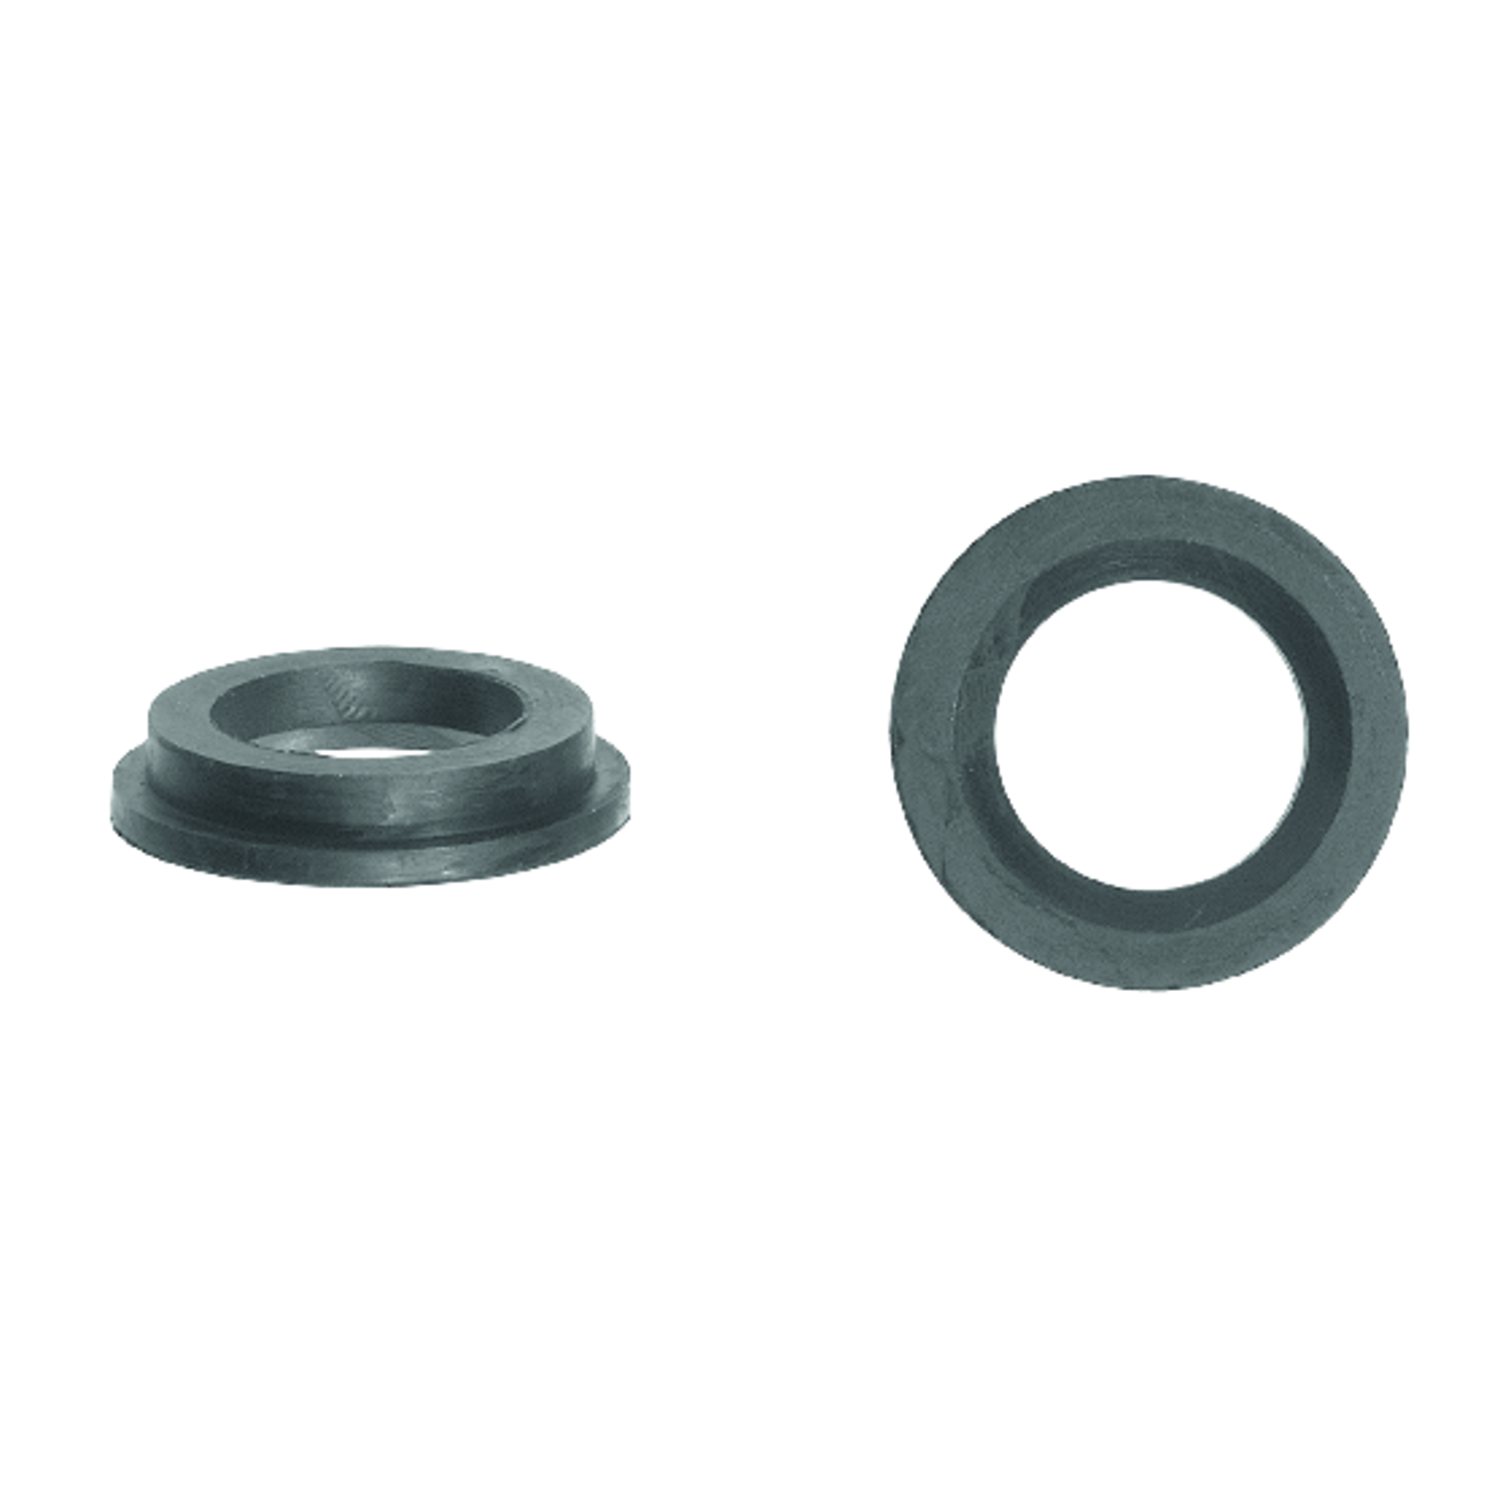 Danco  5/8 in. Dia. Rubber  Washer  5